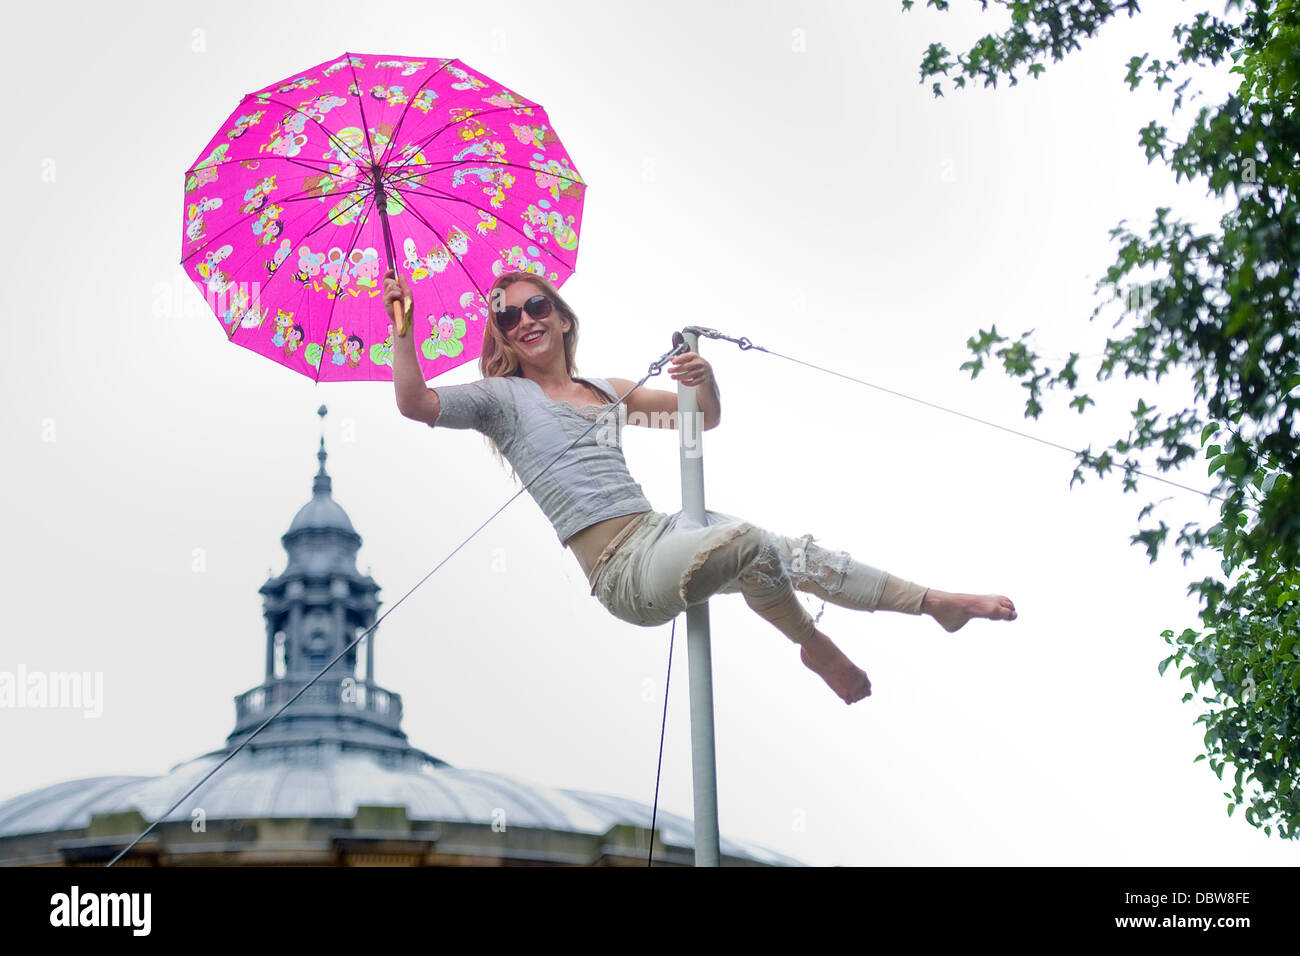 Edinburgh. UK. 5th August 2013. Laura Moy part of the circus group who perform Flown at Edinburgh's Underbelly - Stock Image